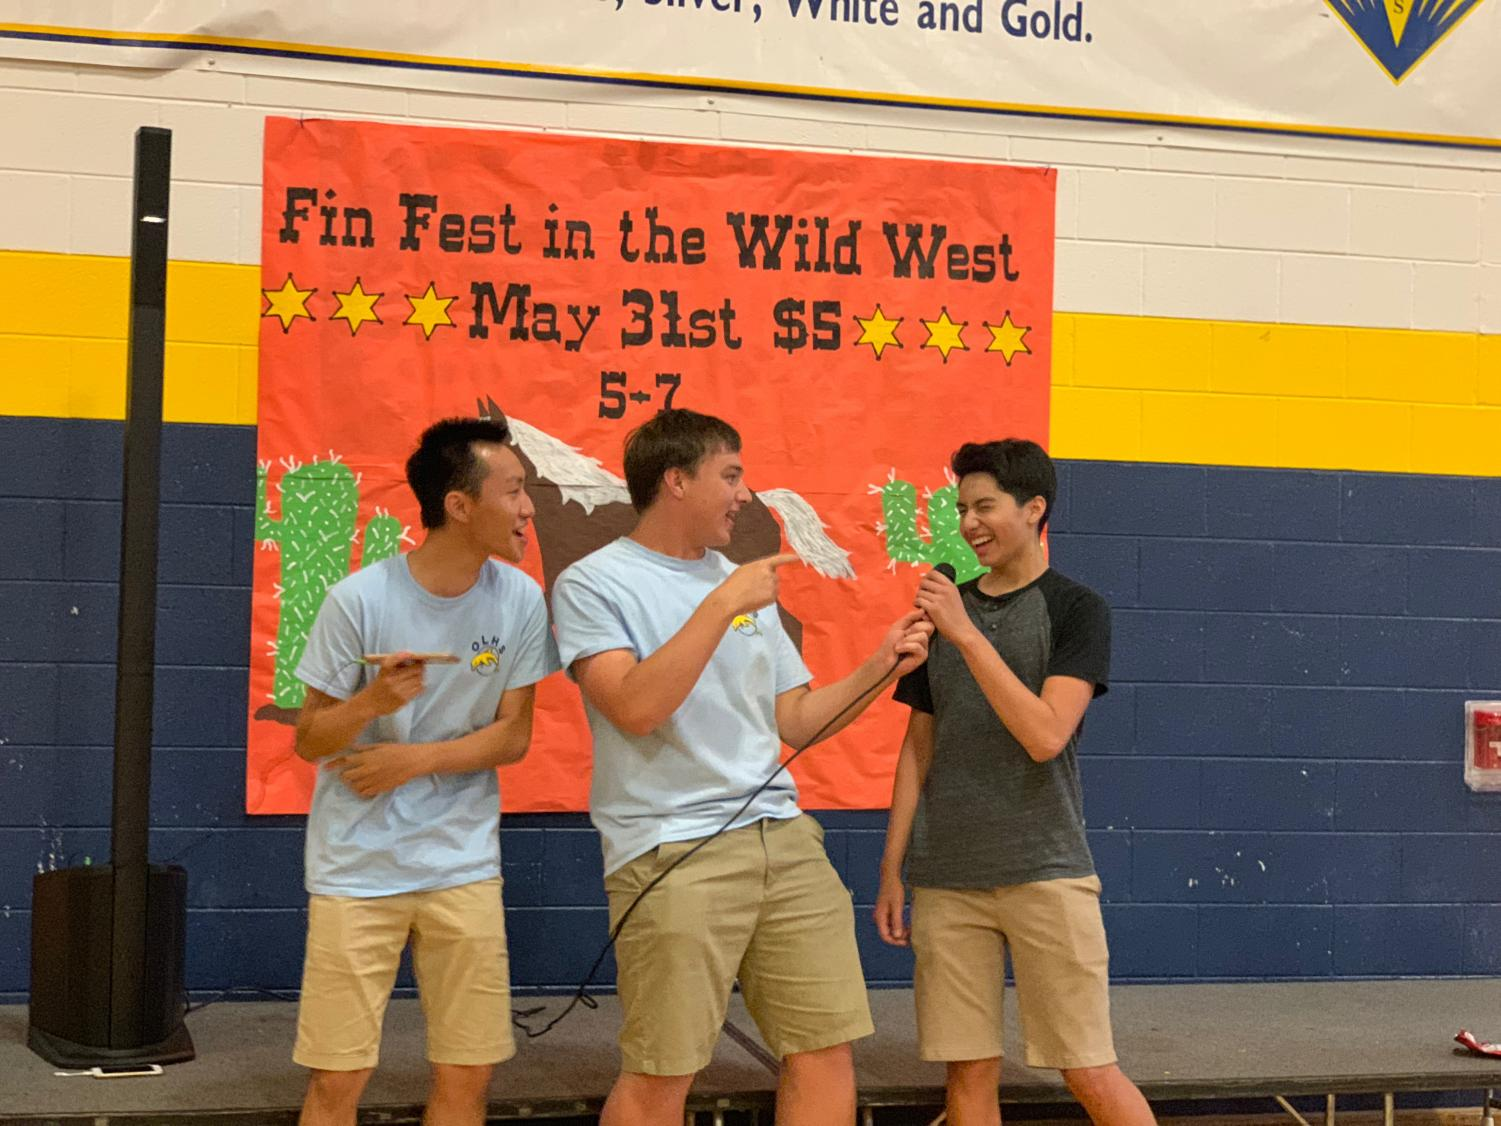 Senior John Wong, senior Lars Wirstrom, and sophomore Josh Esposo sing karaoke on the Fin Fest stage on May 31 in the gymnasium.